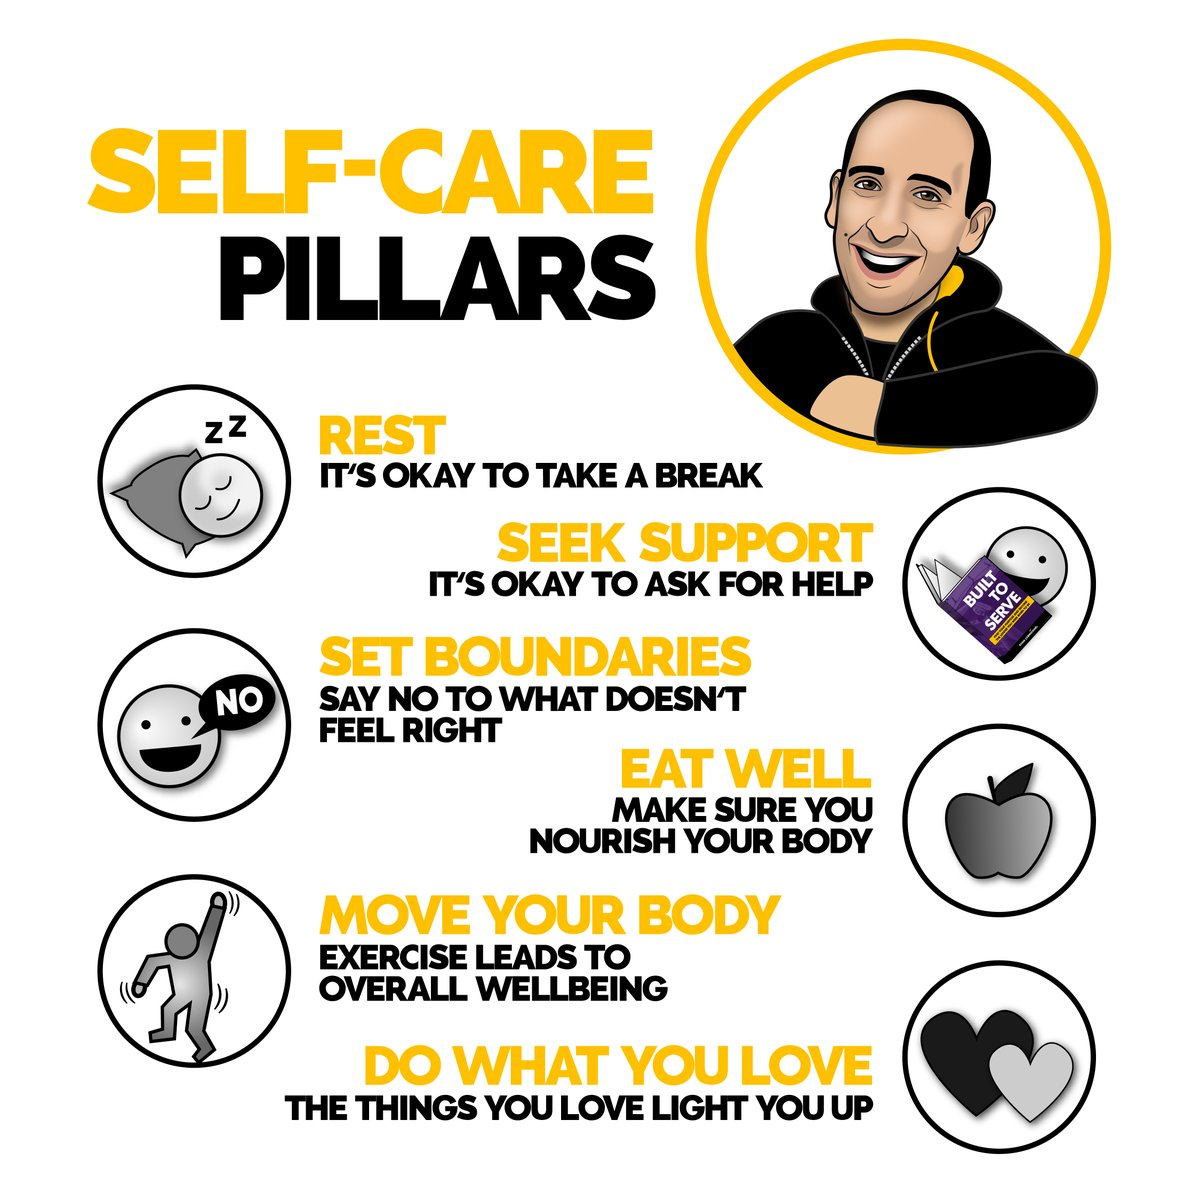 Drop a 'YES' below if you need to embrace one of these points! 👇  Self-care pillars: 1. Rest 2. Seek support 3. Set Boundaries 4. Eat well 5. Move your body 6. Do What you love ______________________________________  #bestadvice #personaldevelopment #selfcare https://t.co/SEFamW8jBH